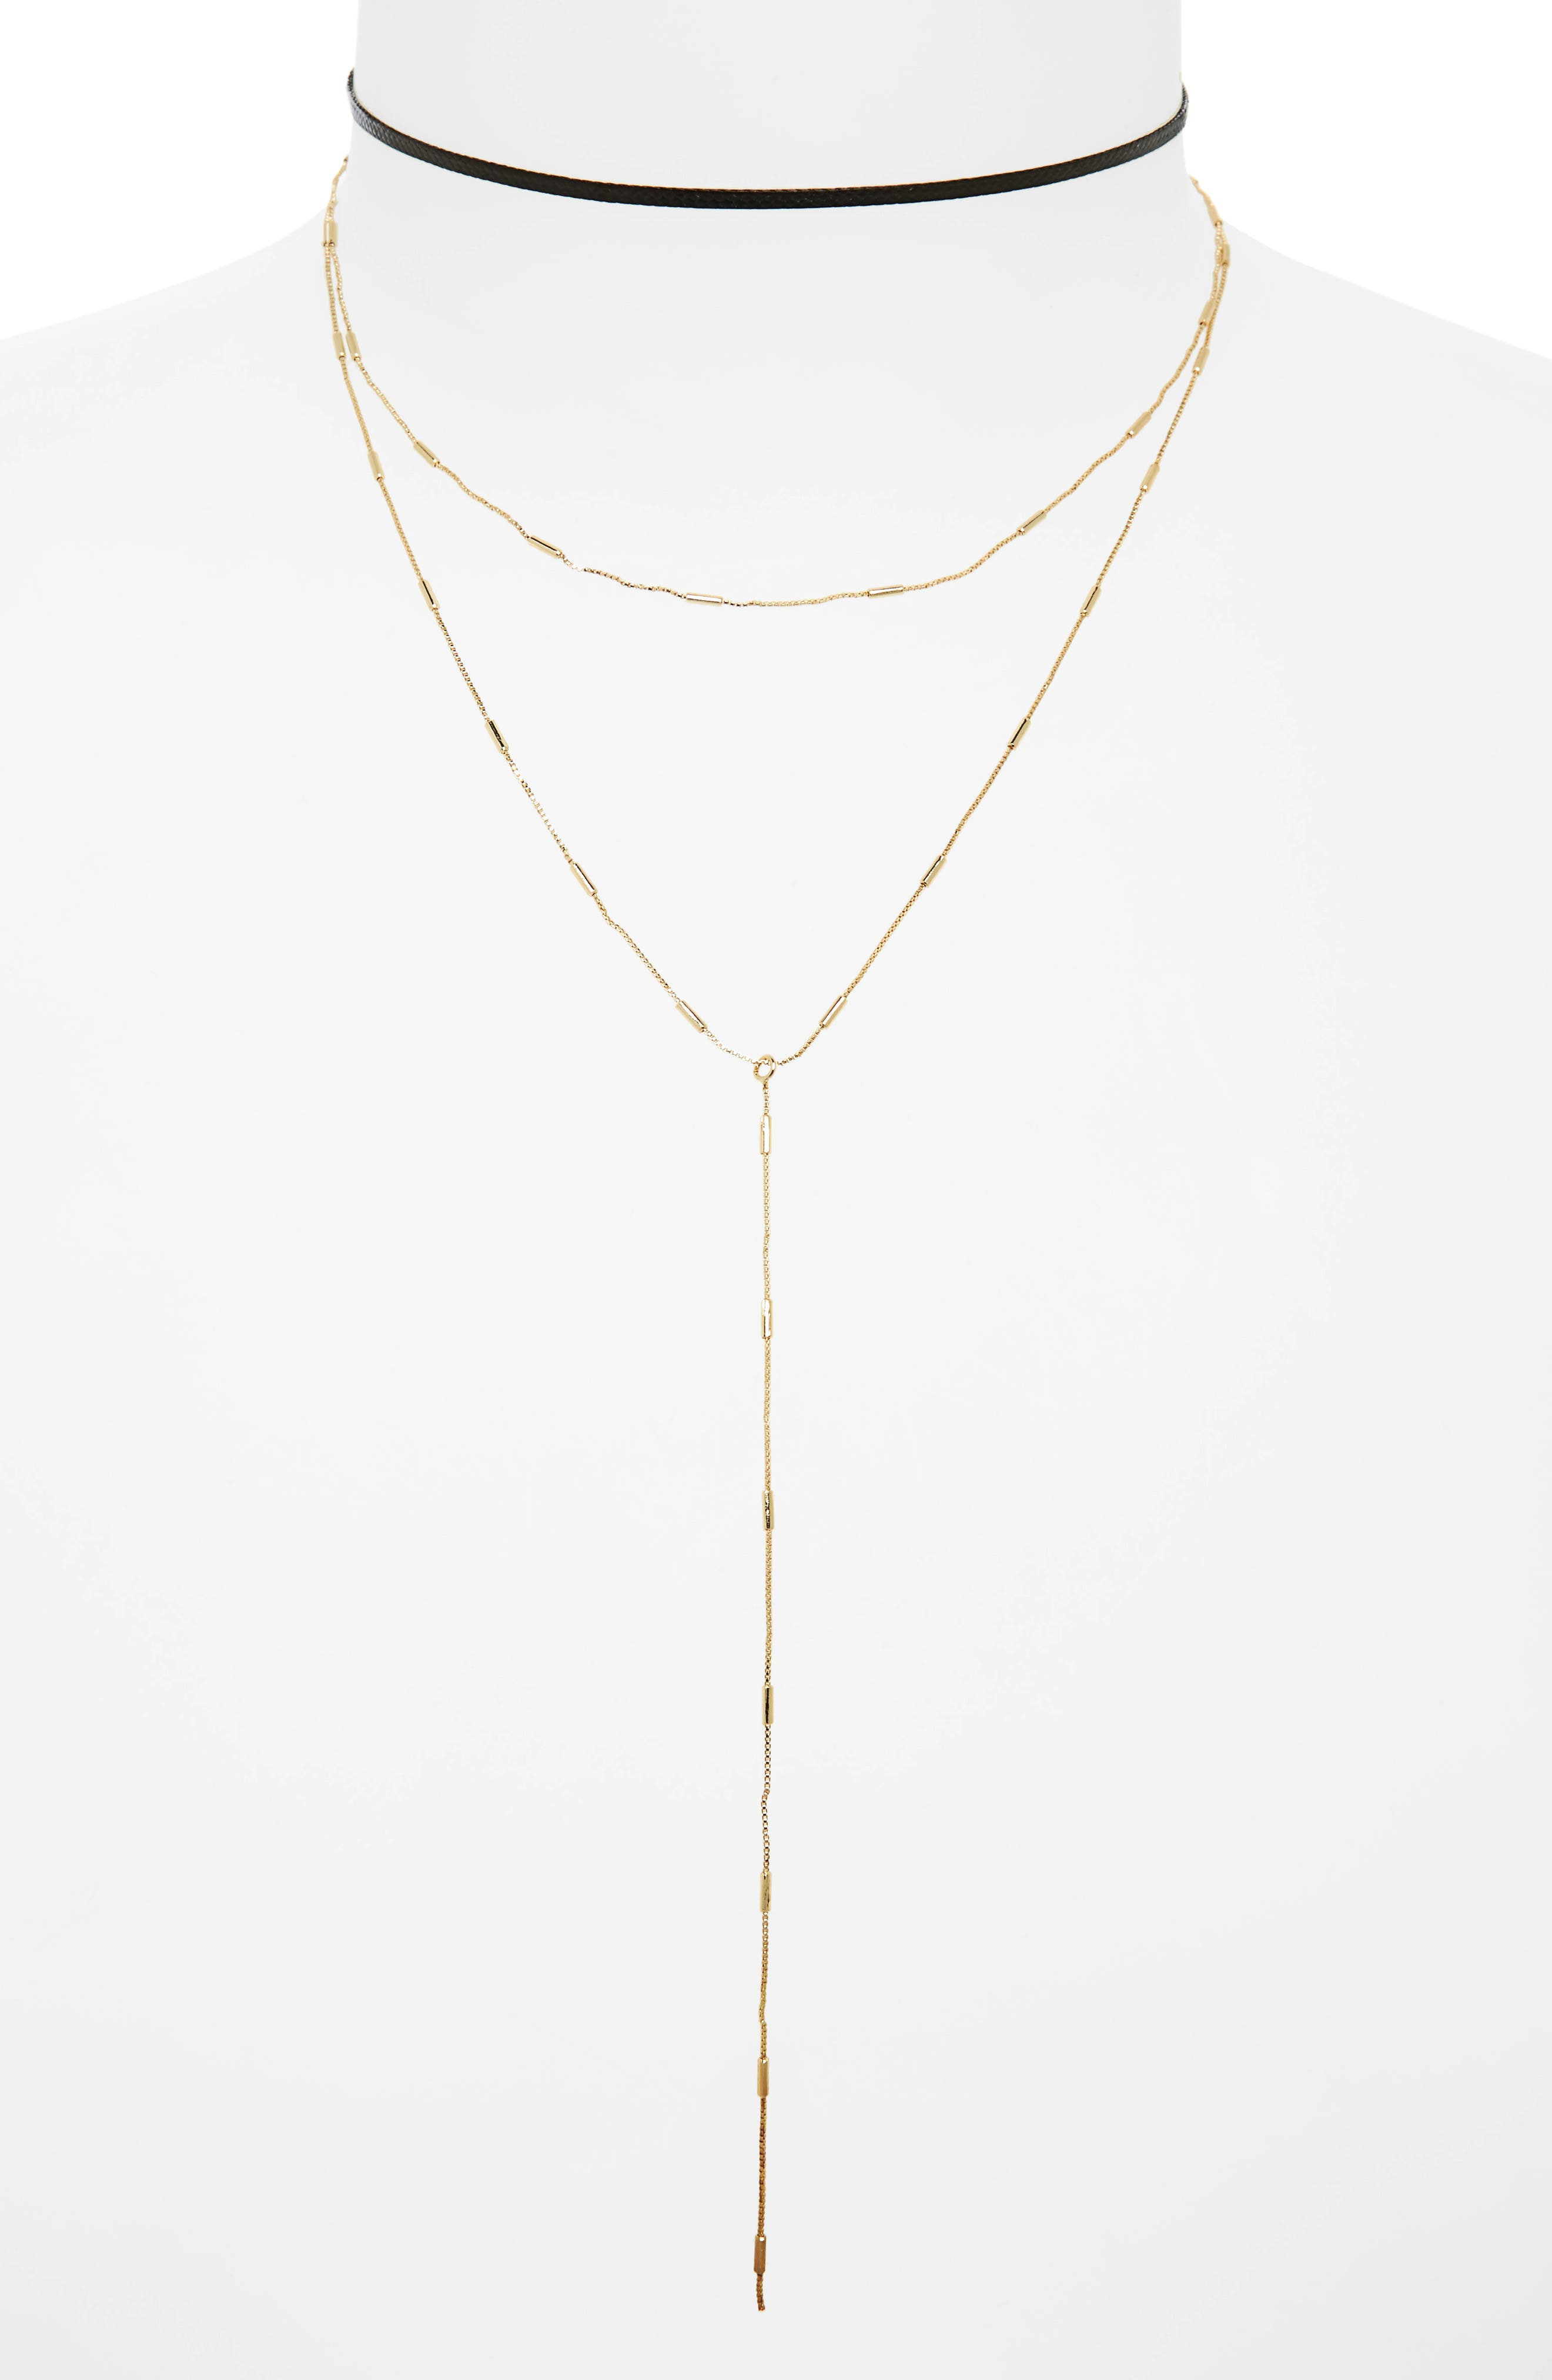 2-Pack Choker & Y-Necklace,                         Main,                         color, Black/ Gold